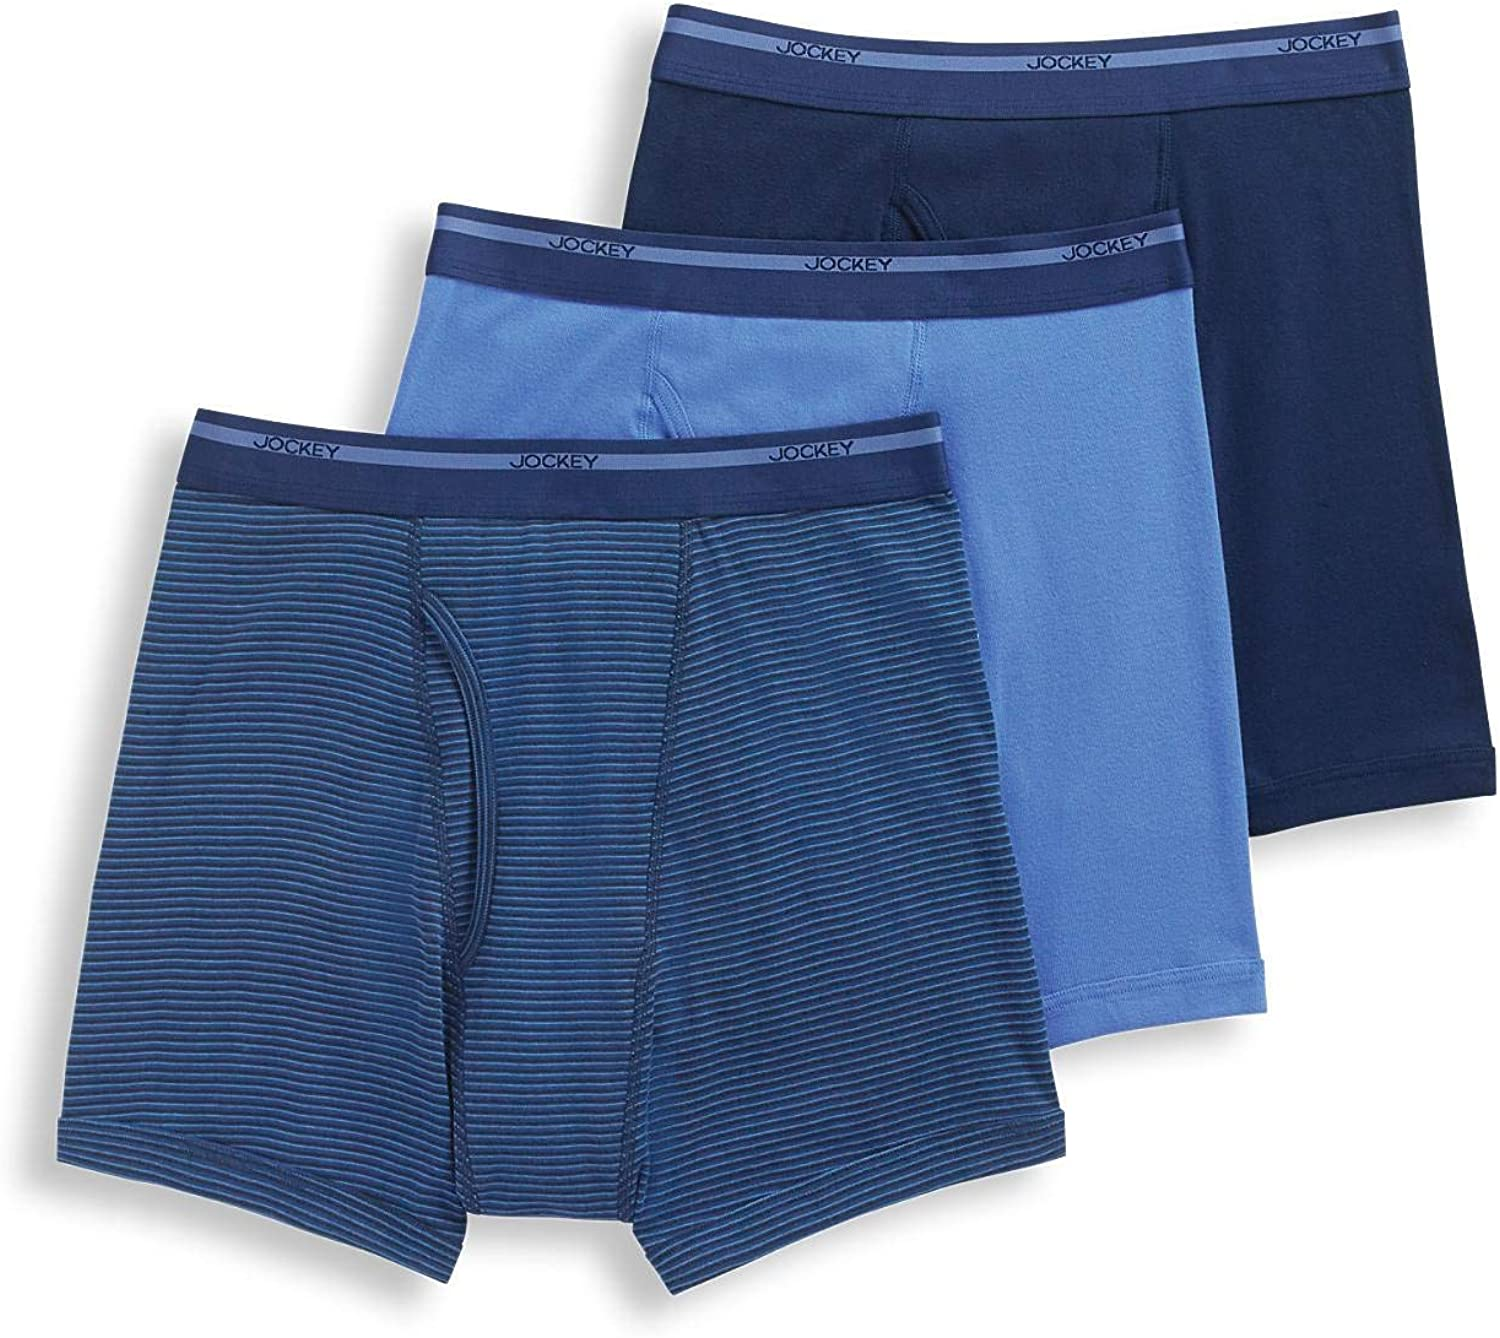 Jockey Men's Underwear Lightweight Classic Boxer Brief - 3 Pack